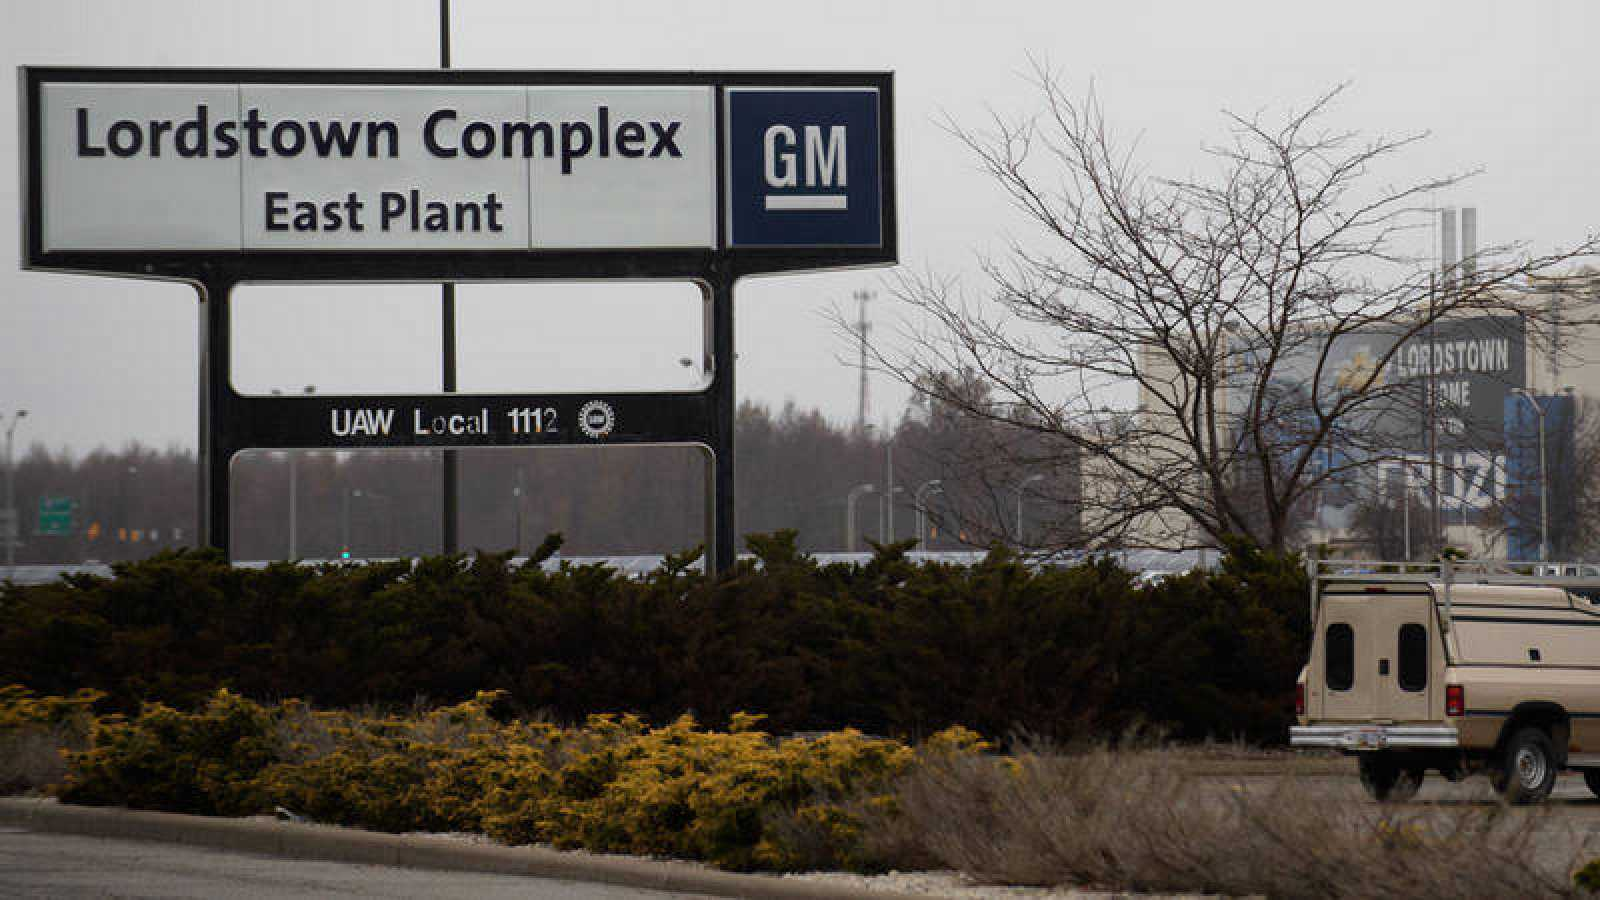 Planta de GM en Lordstown en Ohio